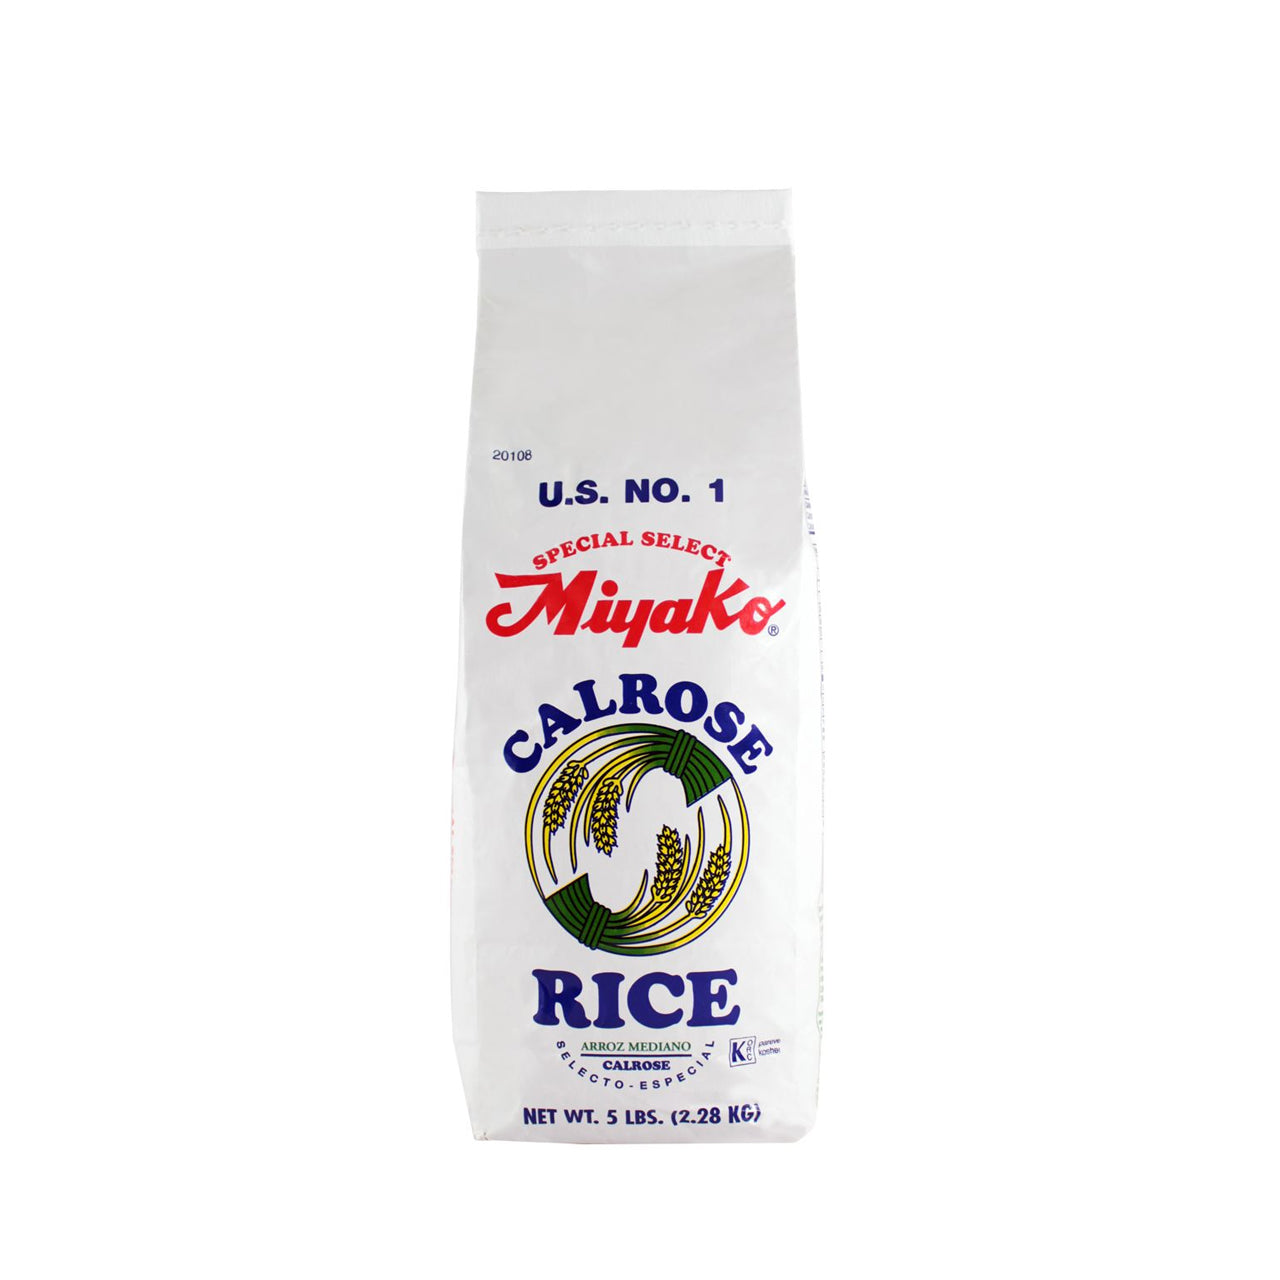 Miyako Calrose Medium Grain White Rice - 5lbs (2.28kg) (SKU: 20108)